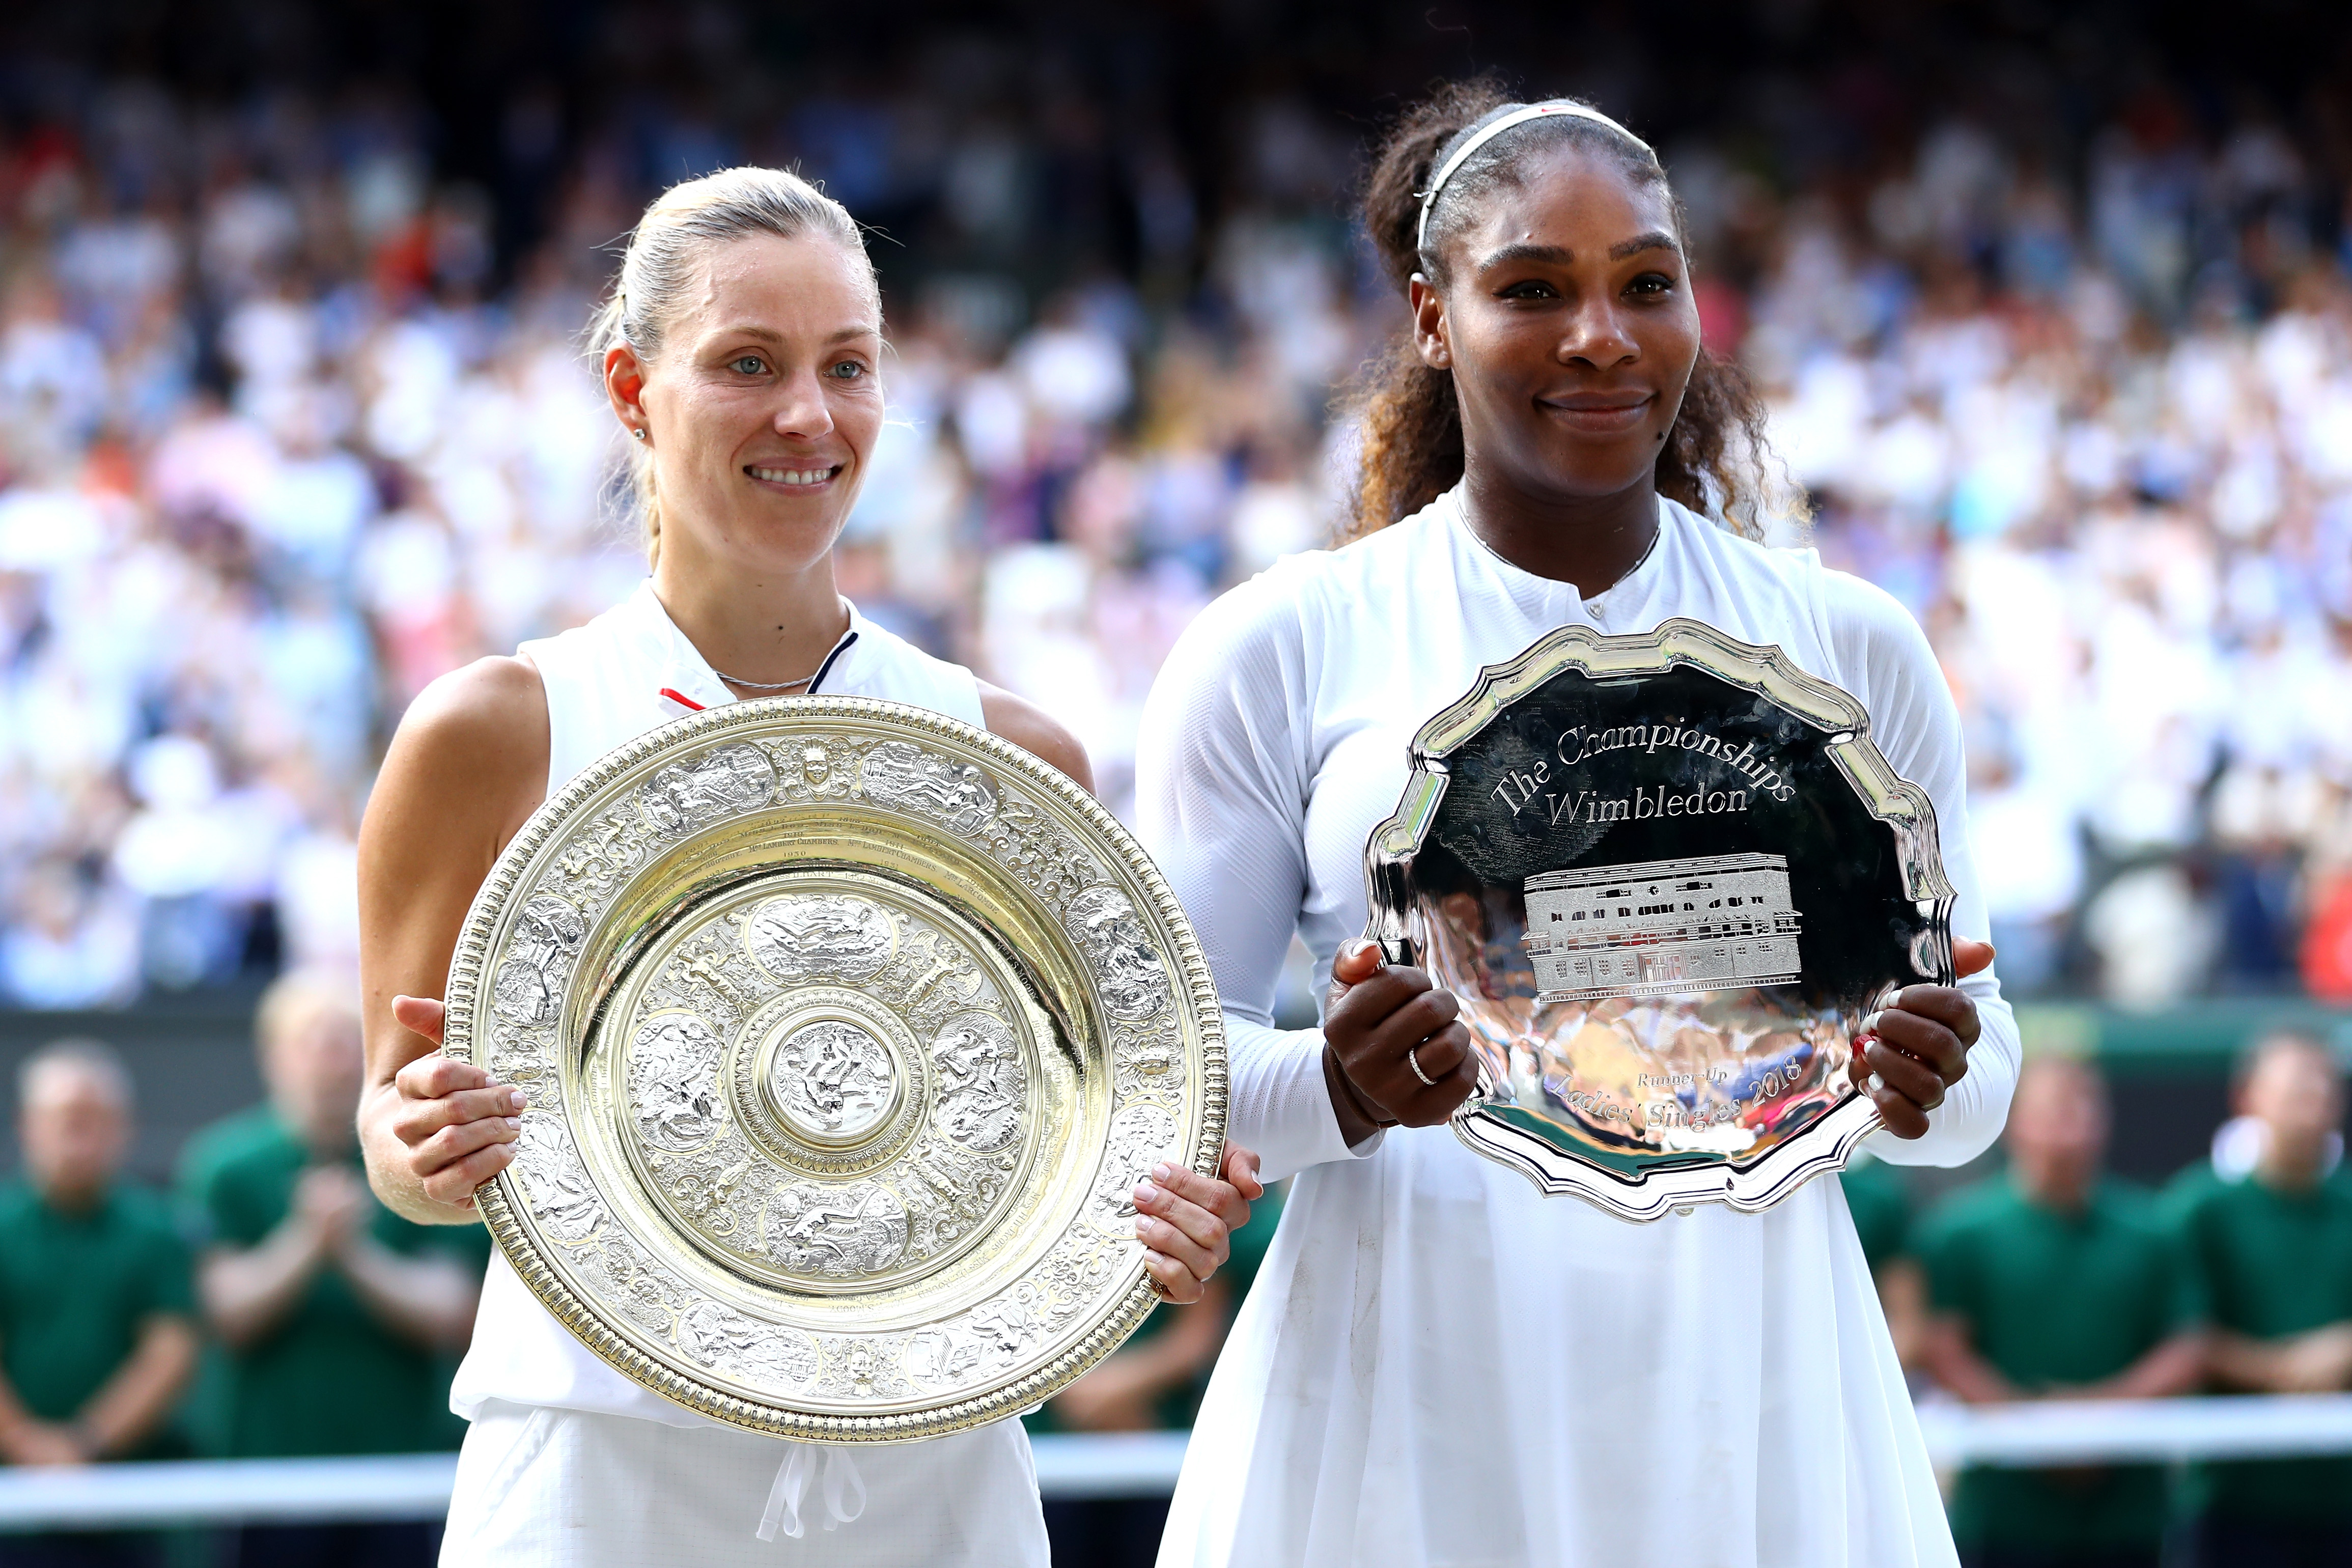 Winner Angelique Kerber of Germany and runner-up Serena Williams of The United States pose with the trophies after the Ladies' Singles final on day twelve of the Wimbledon Lawn Tennis Championships at All England Lawn Tennis and Croquet Club on July 14